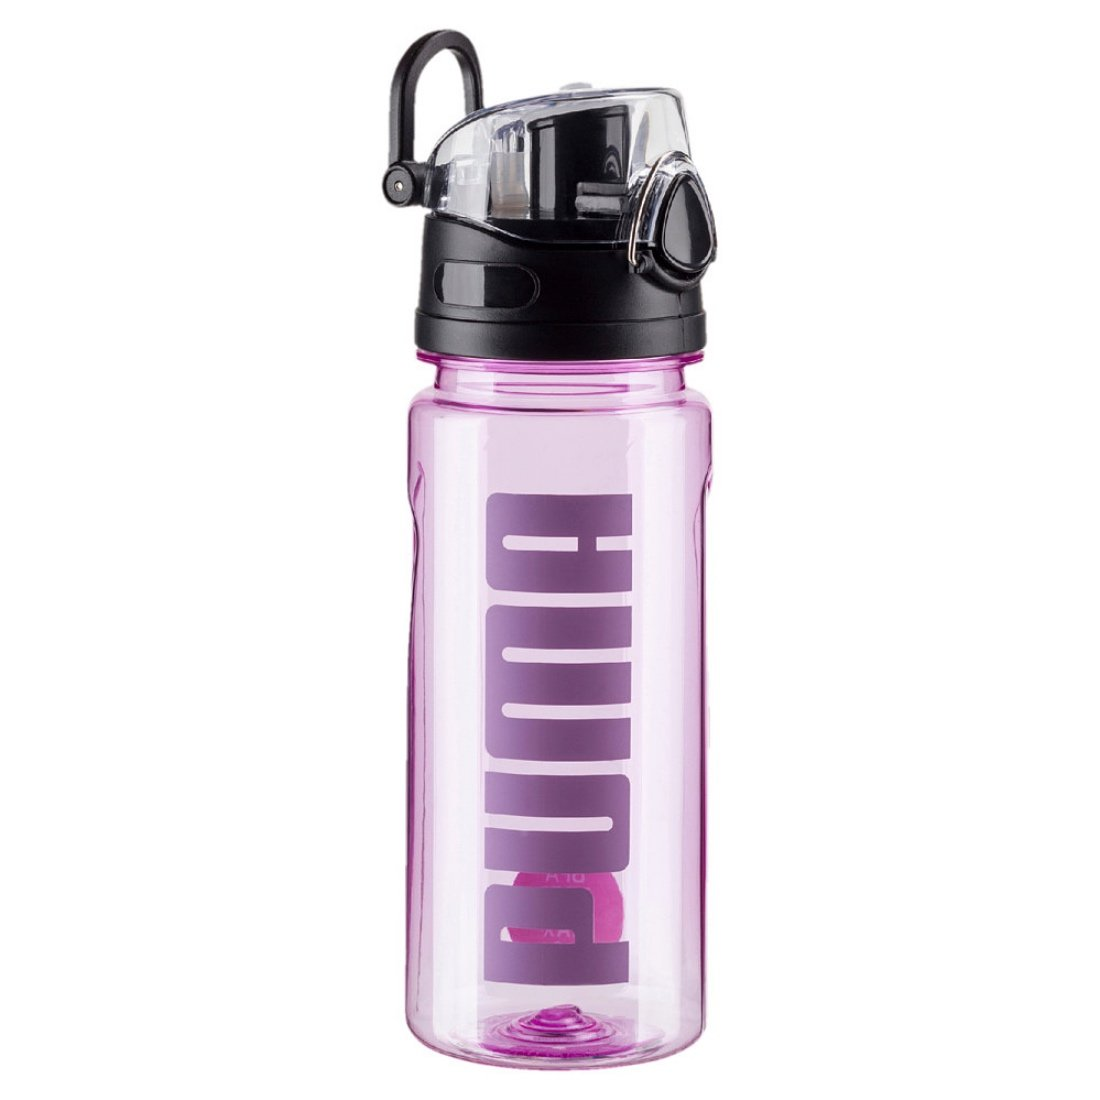 Puma 53370, Waterbottle Unisex – Adulto, Winsome Orchid, OSFA Waterbottle Unisex - Adulto